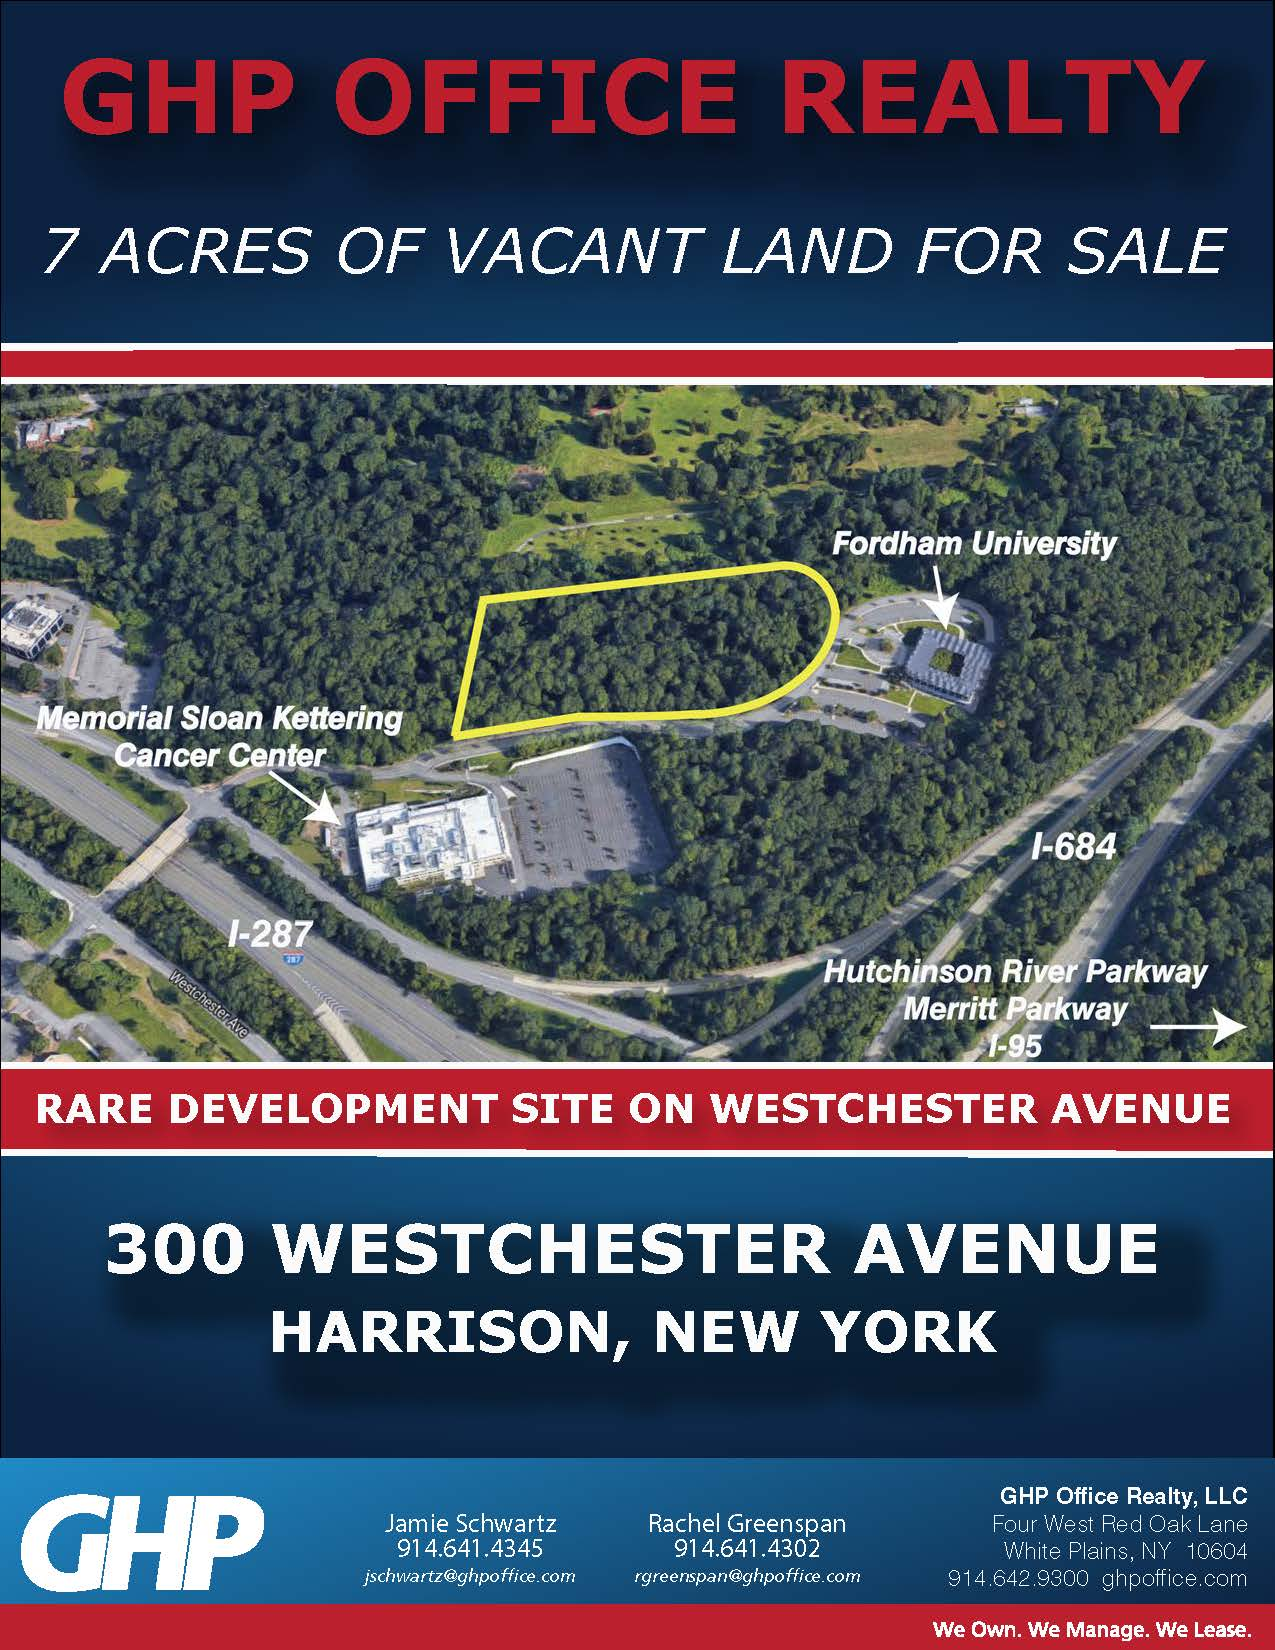 300 Westchester Avenue, Harrison, New York – 7 ACRES AVAILABLE FOR SALE